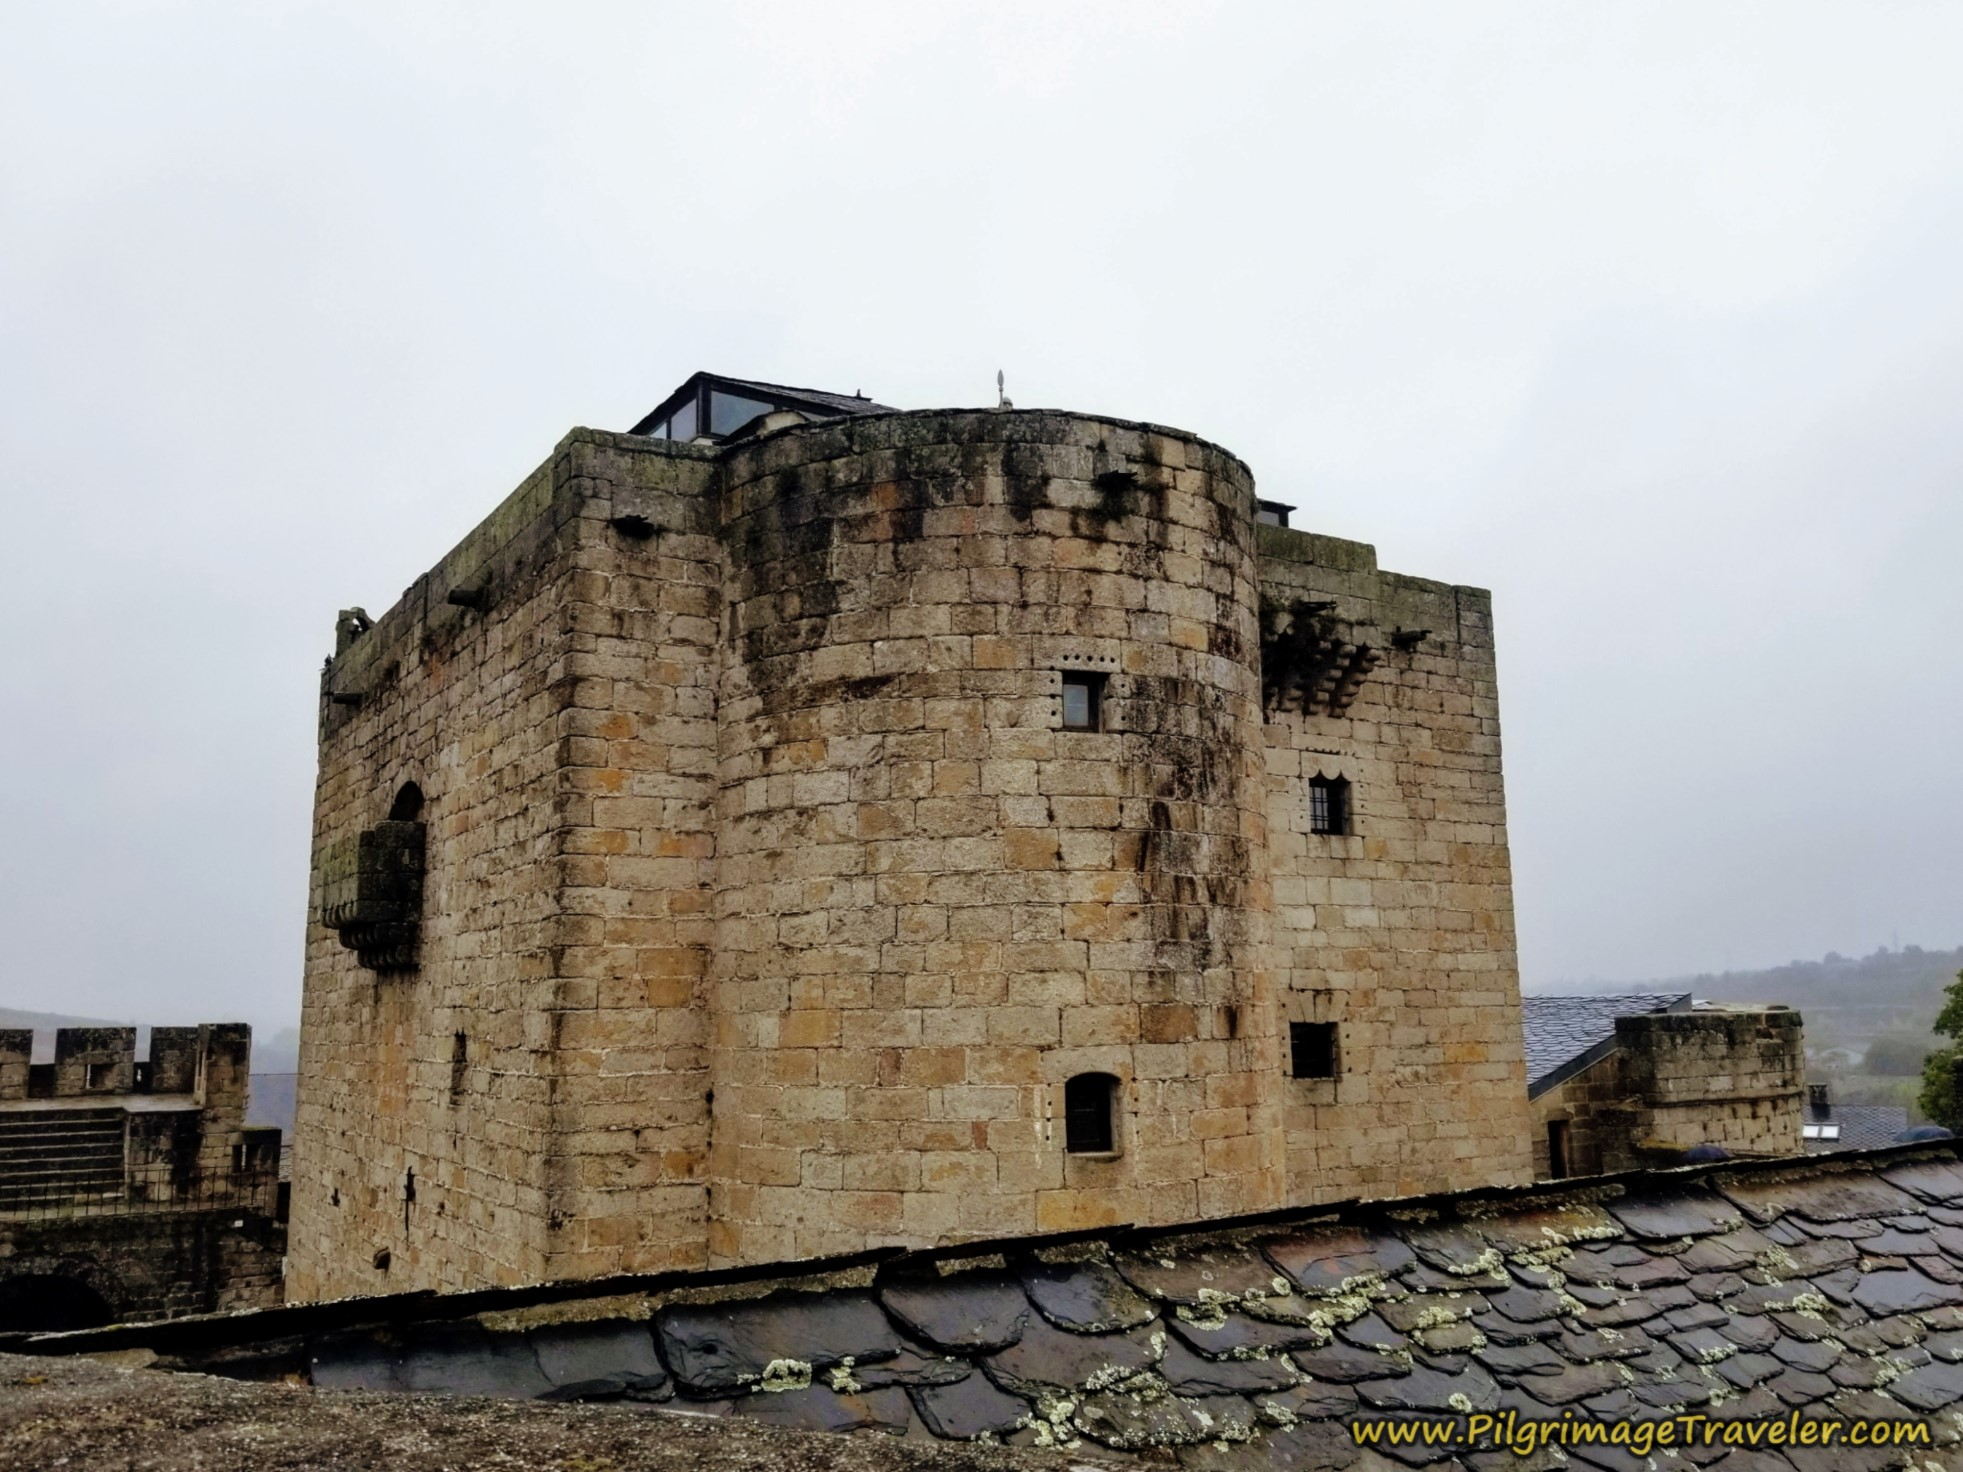 The Castle Keep from the Outer Rooftop, Puebla de Sanabria